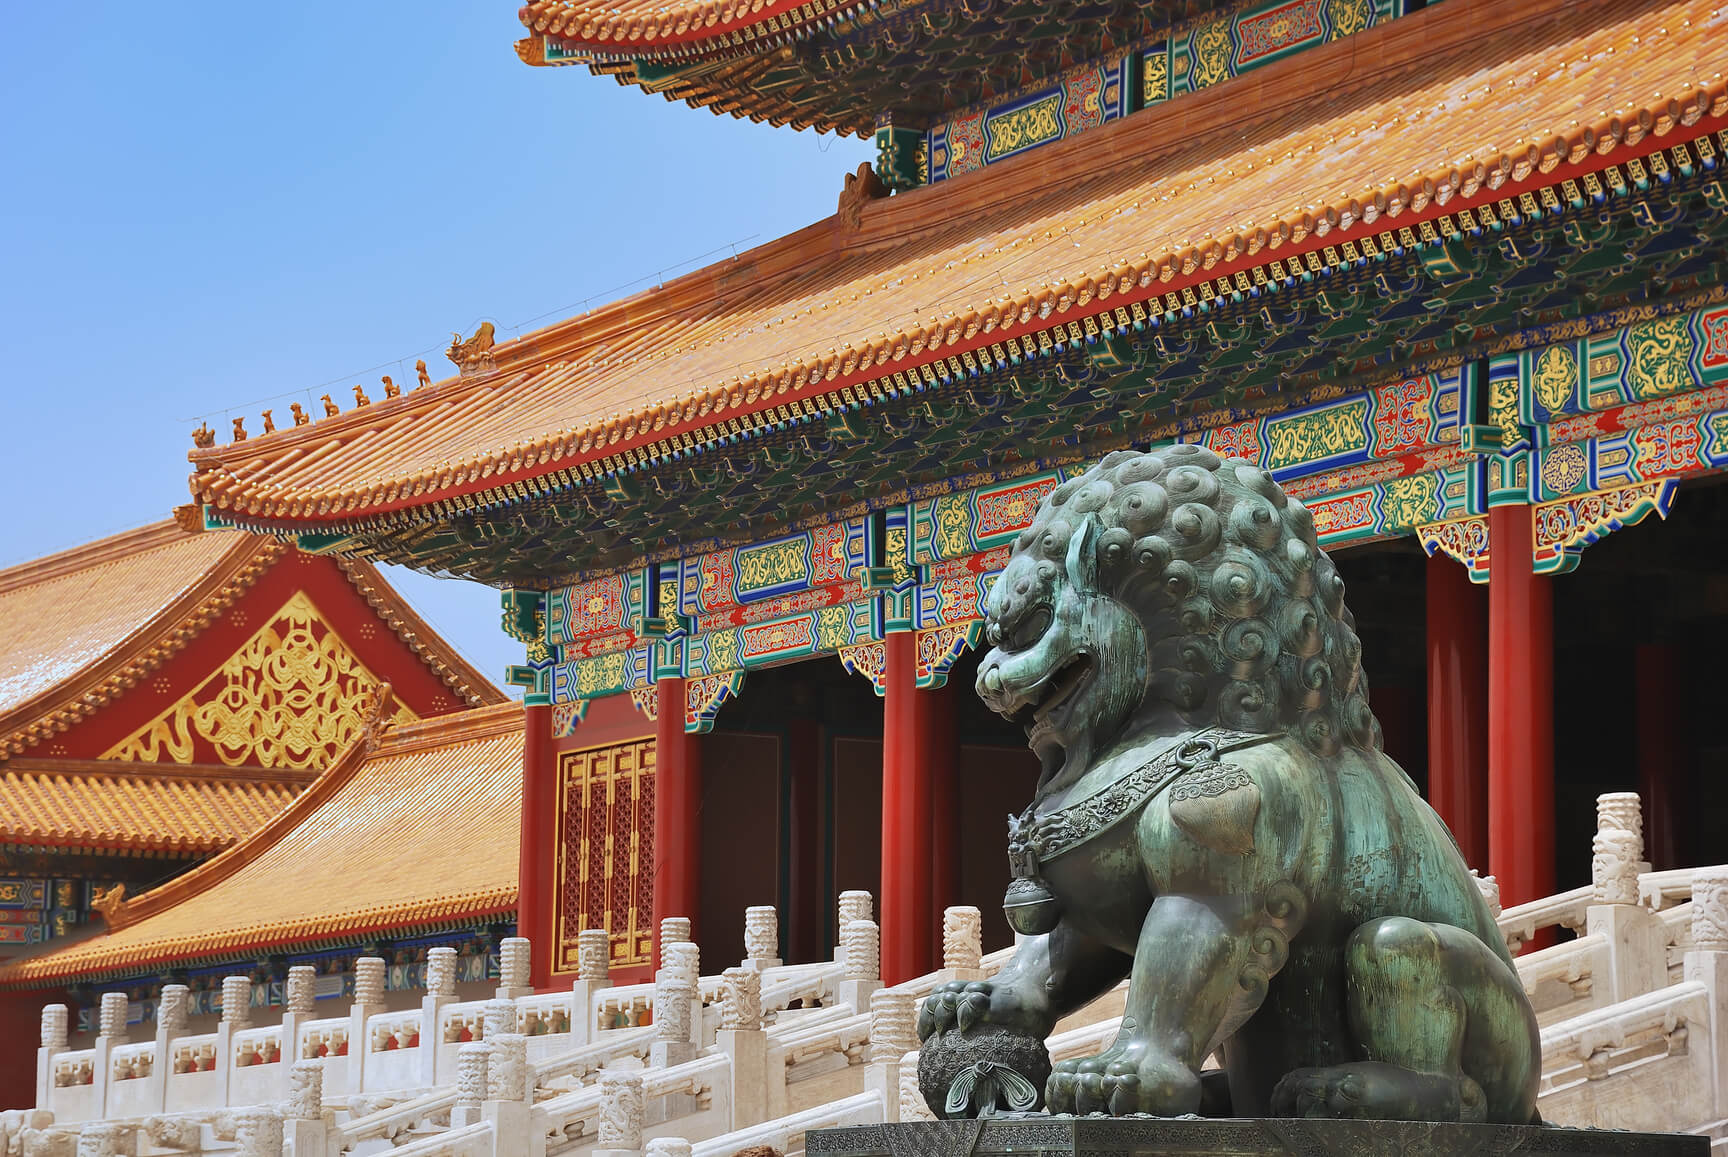 HOT!! Miami to Beijing, China for only $368 roundtrip